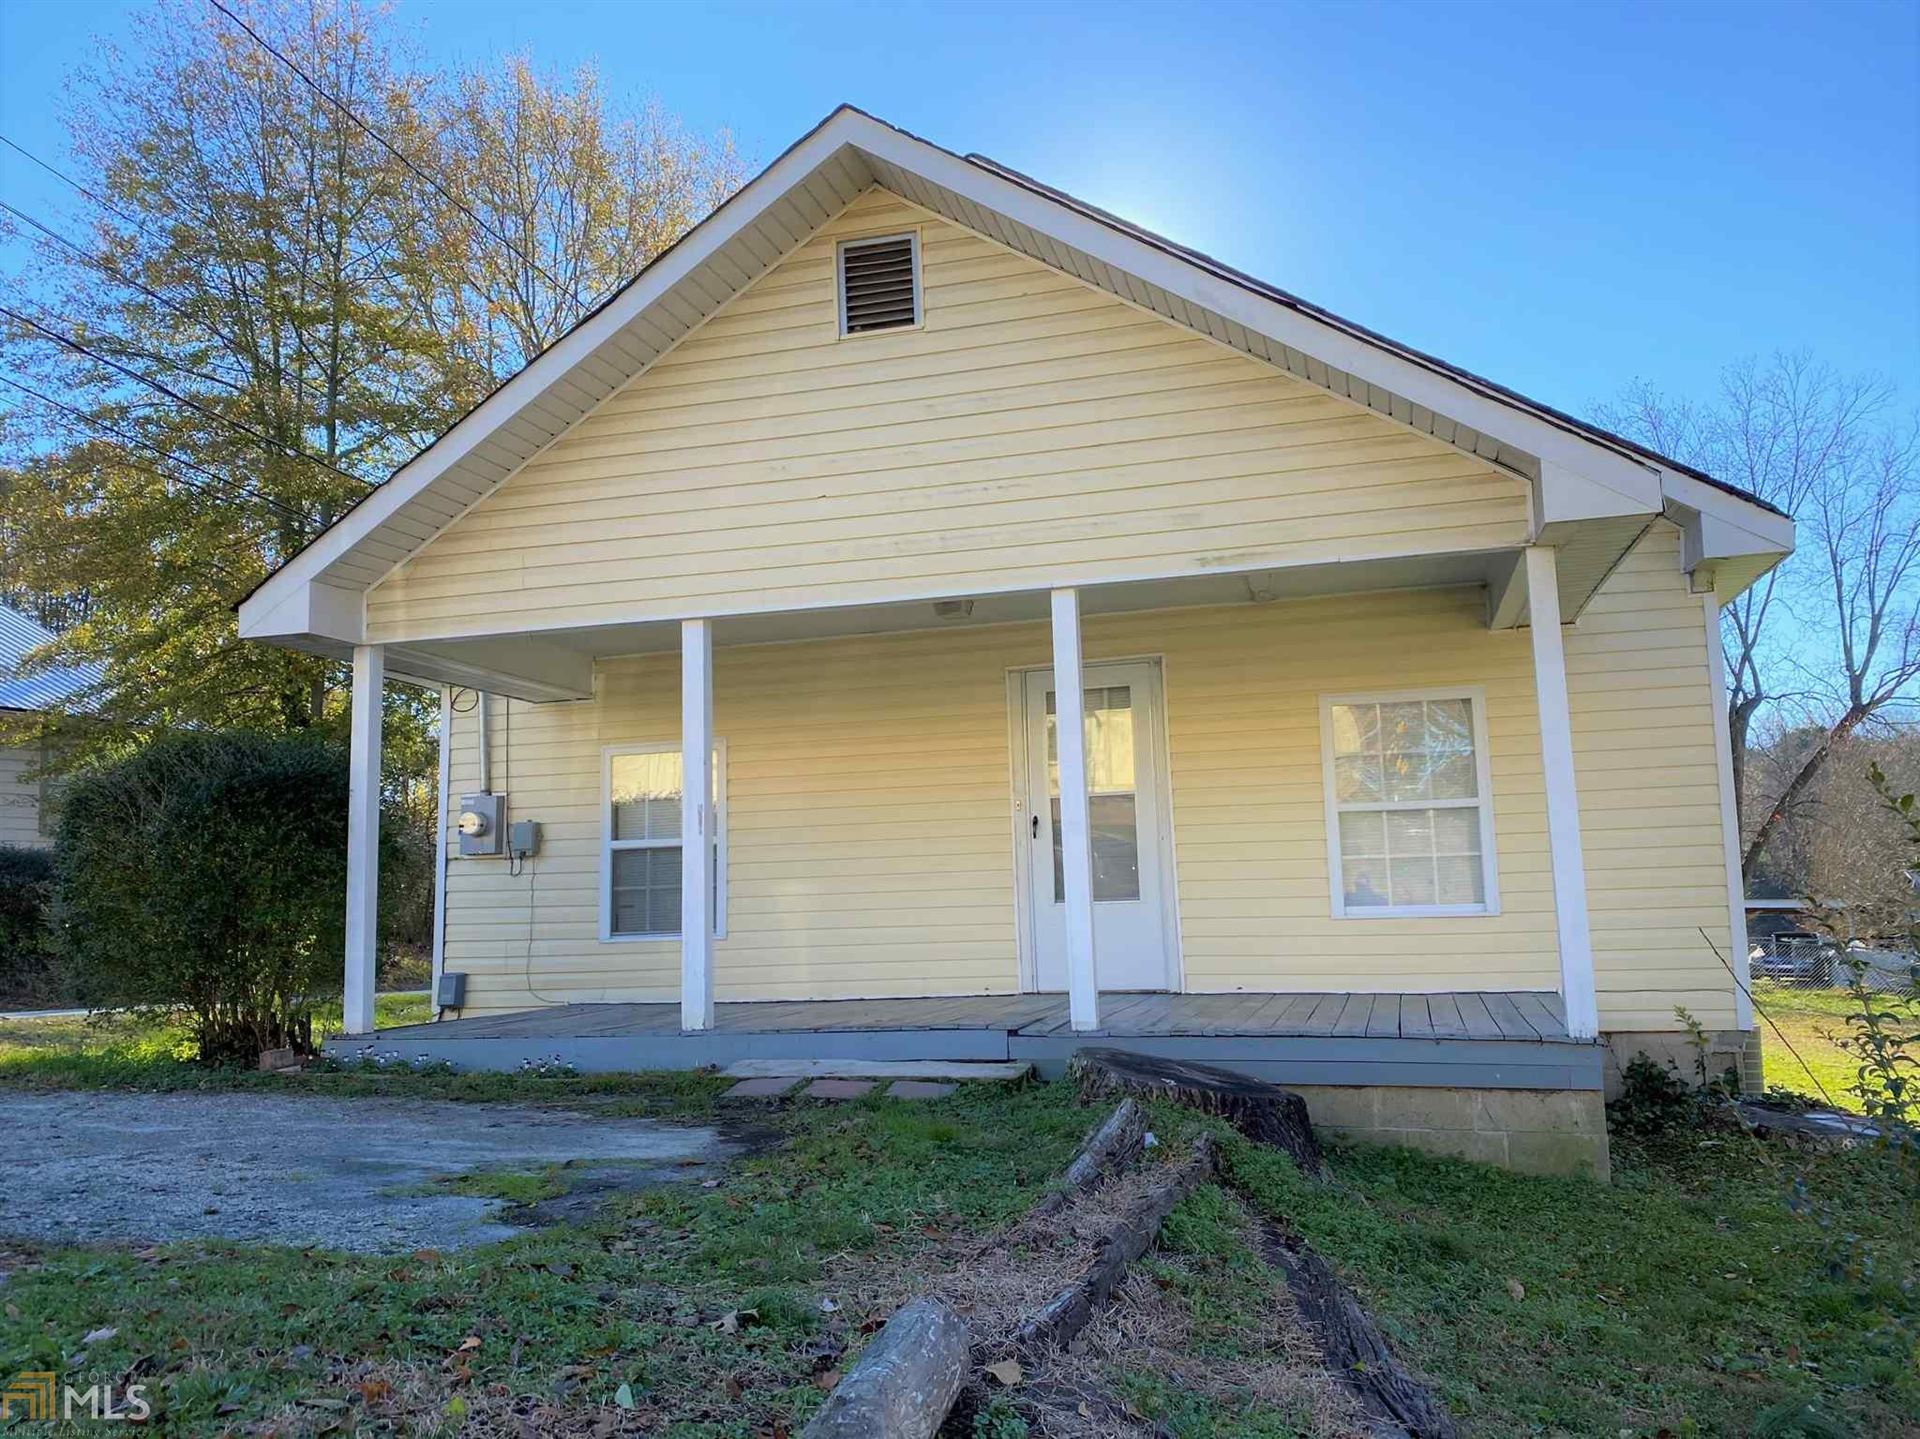 24 Alley St, Toccoa, GA 30577 - MLS#: 8900025